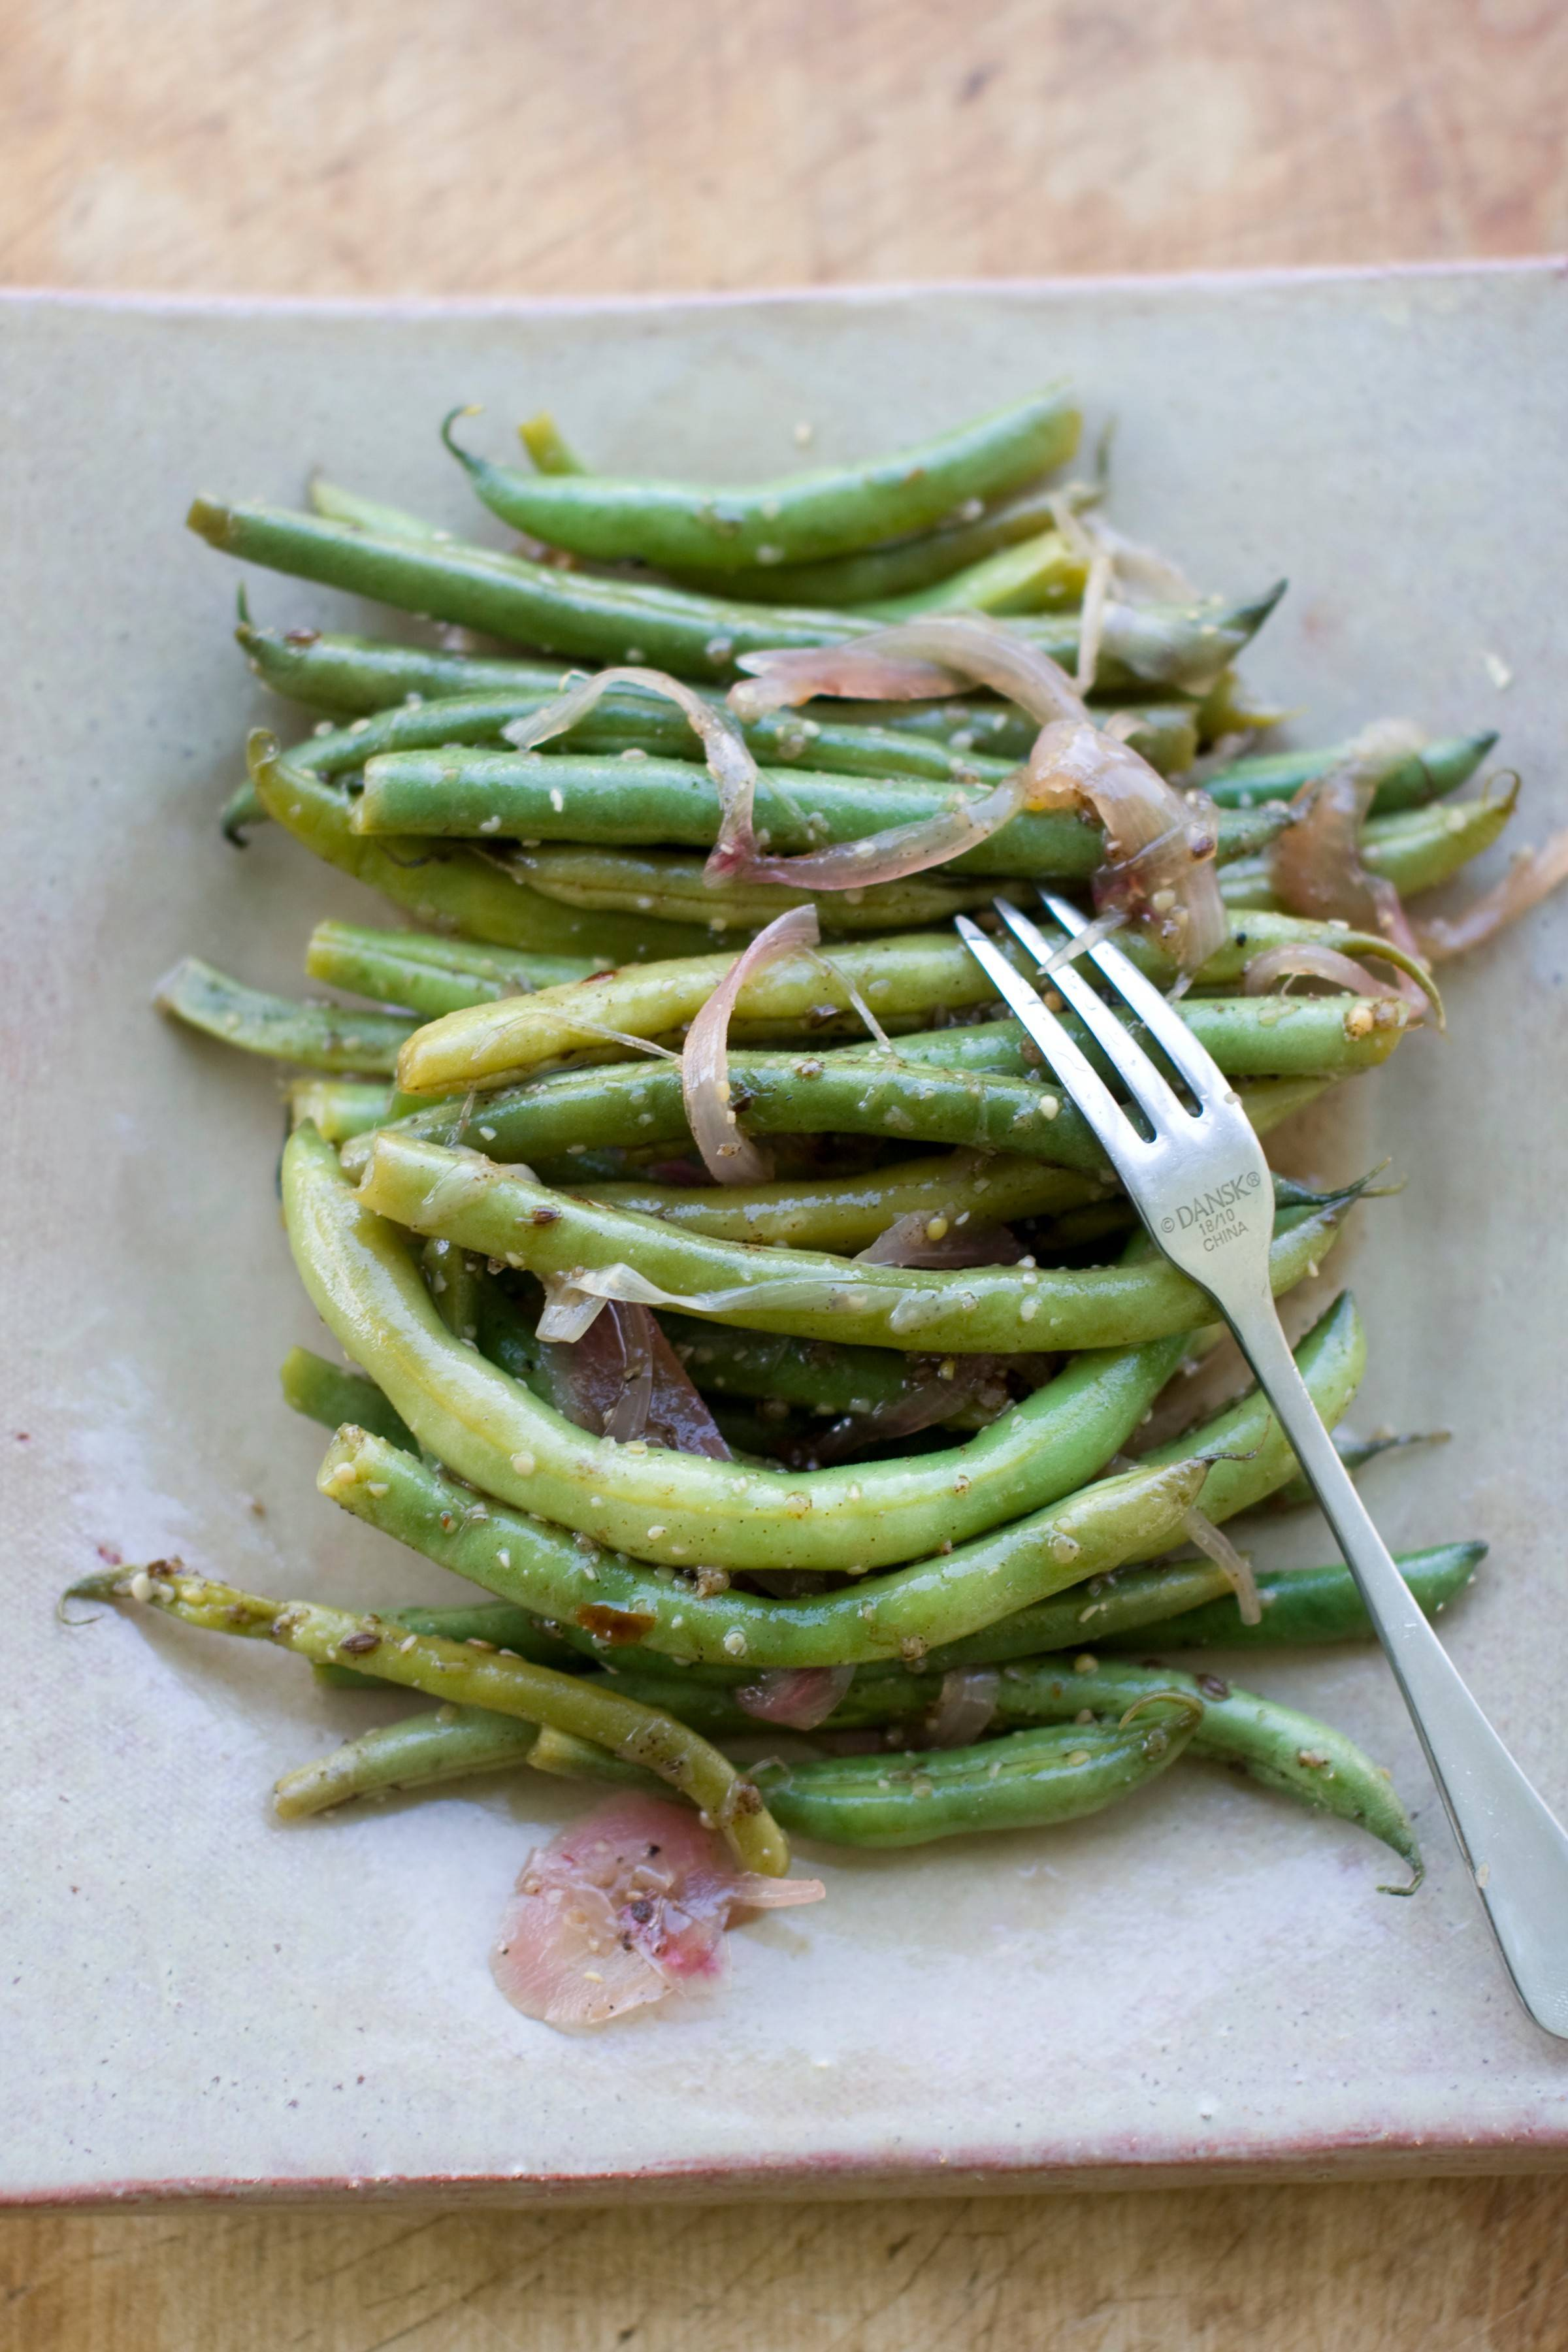 Once jarred and cooled, pickled green beans can be stored in the refrigerator for five days.